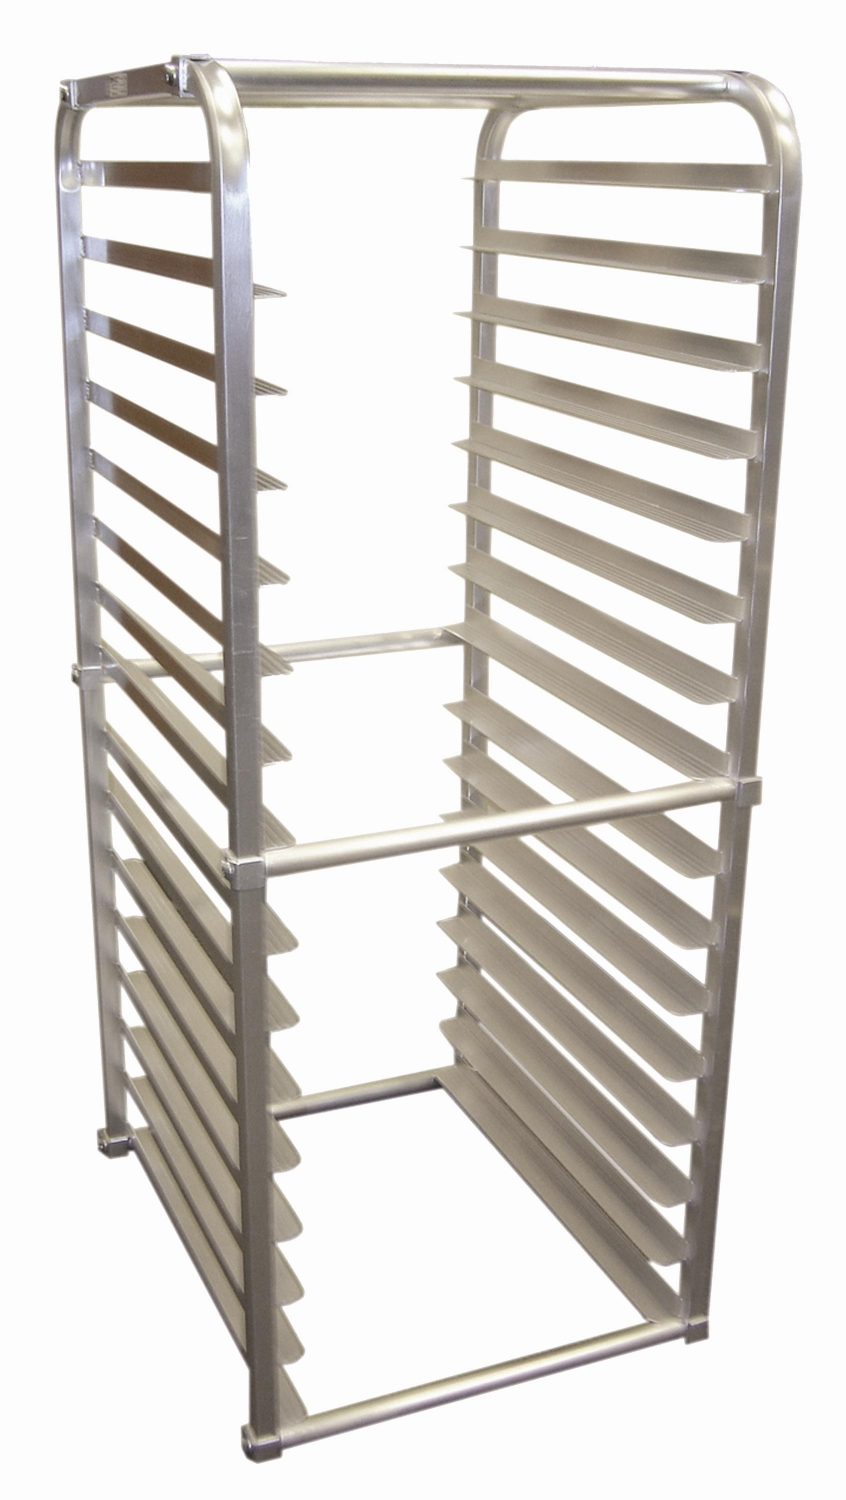 Win-Holt AL-1816-IR-KD 16-Pan Reach-In Refrigerator Insert Rack